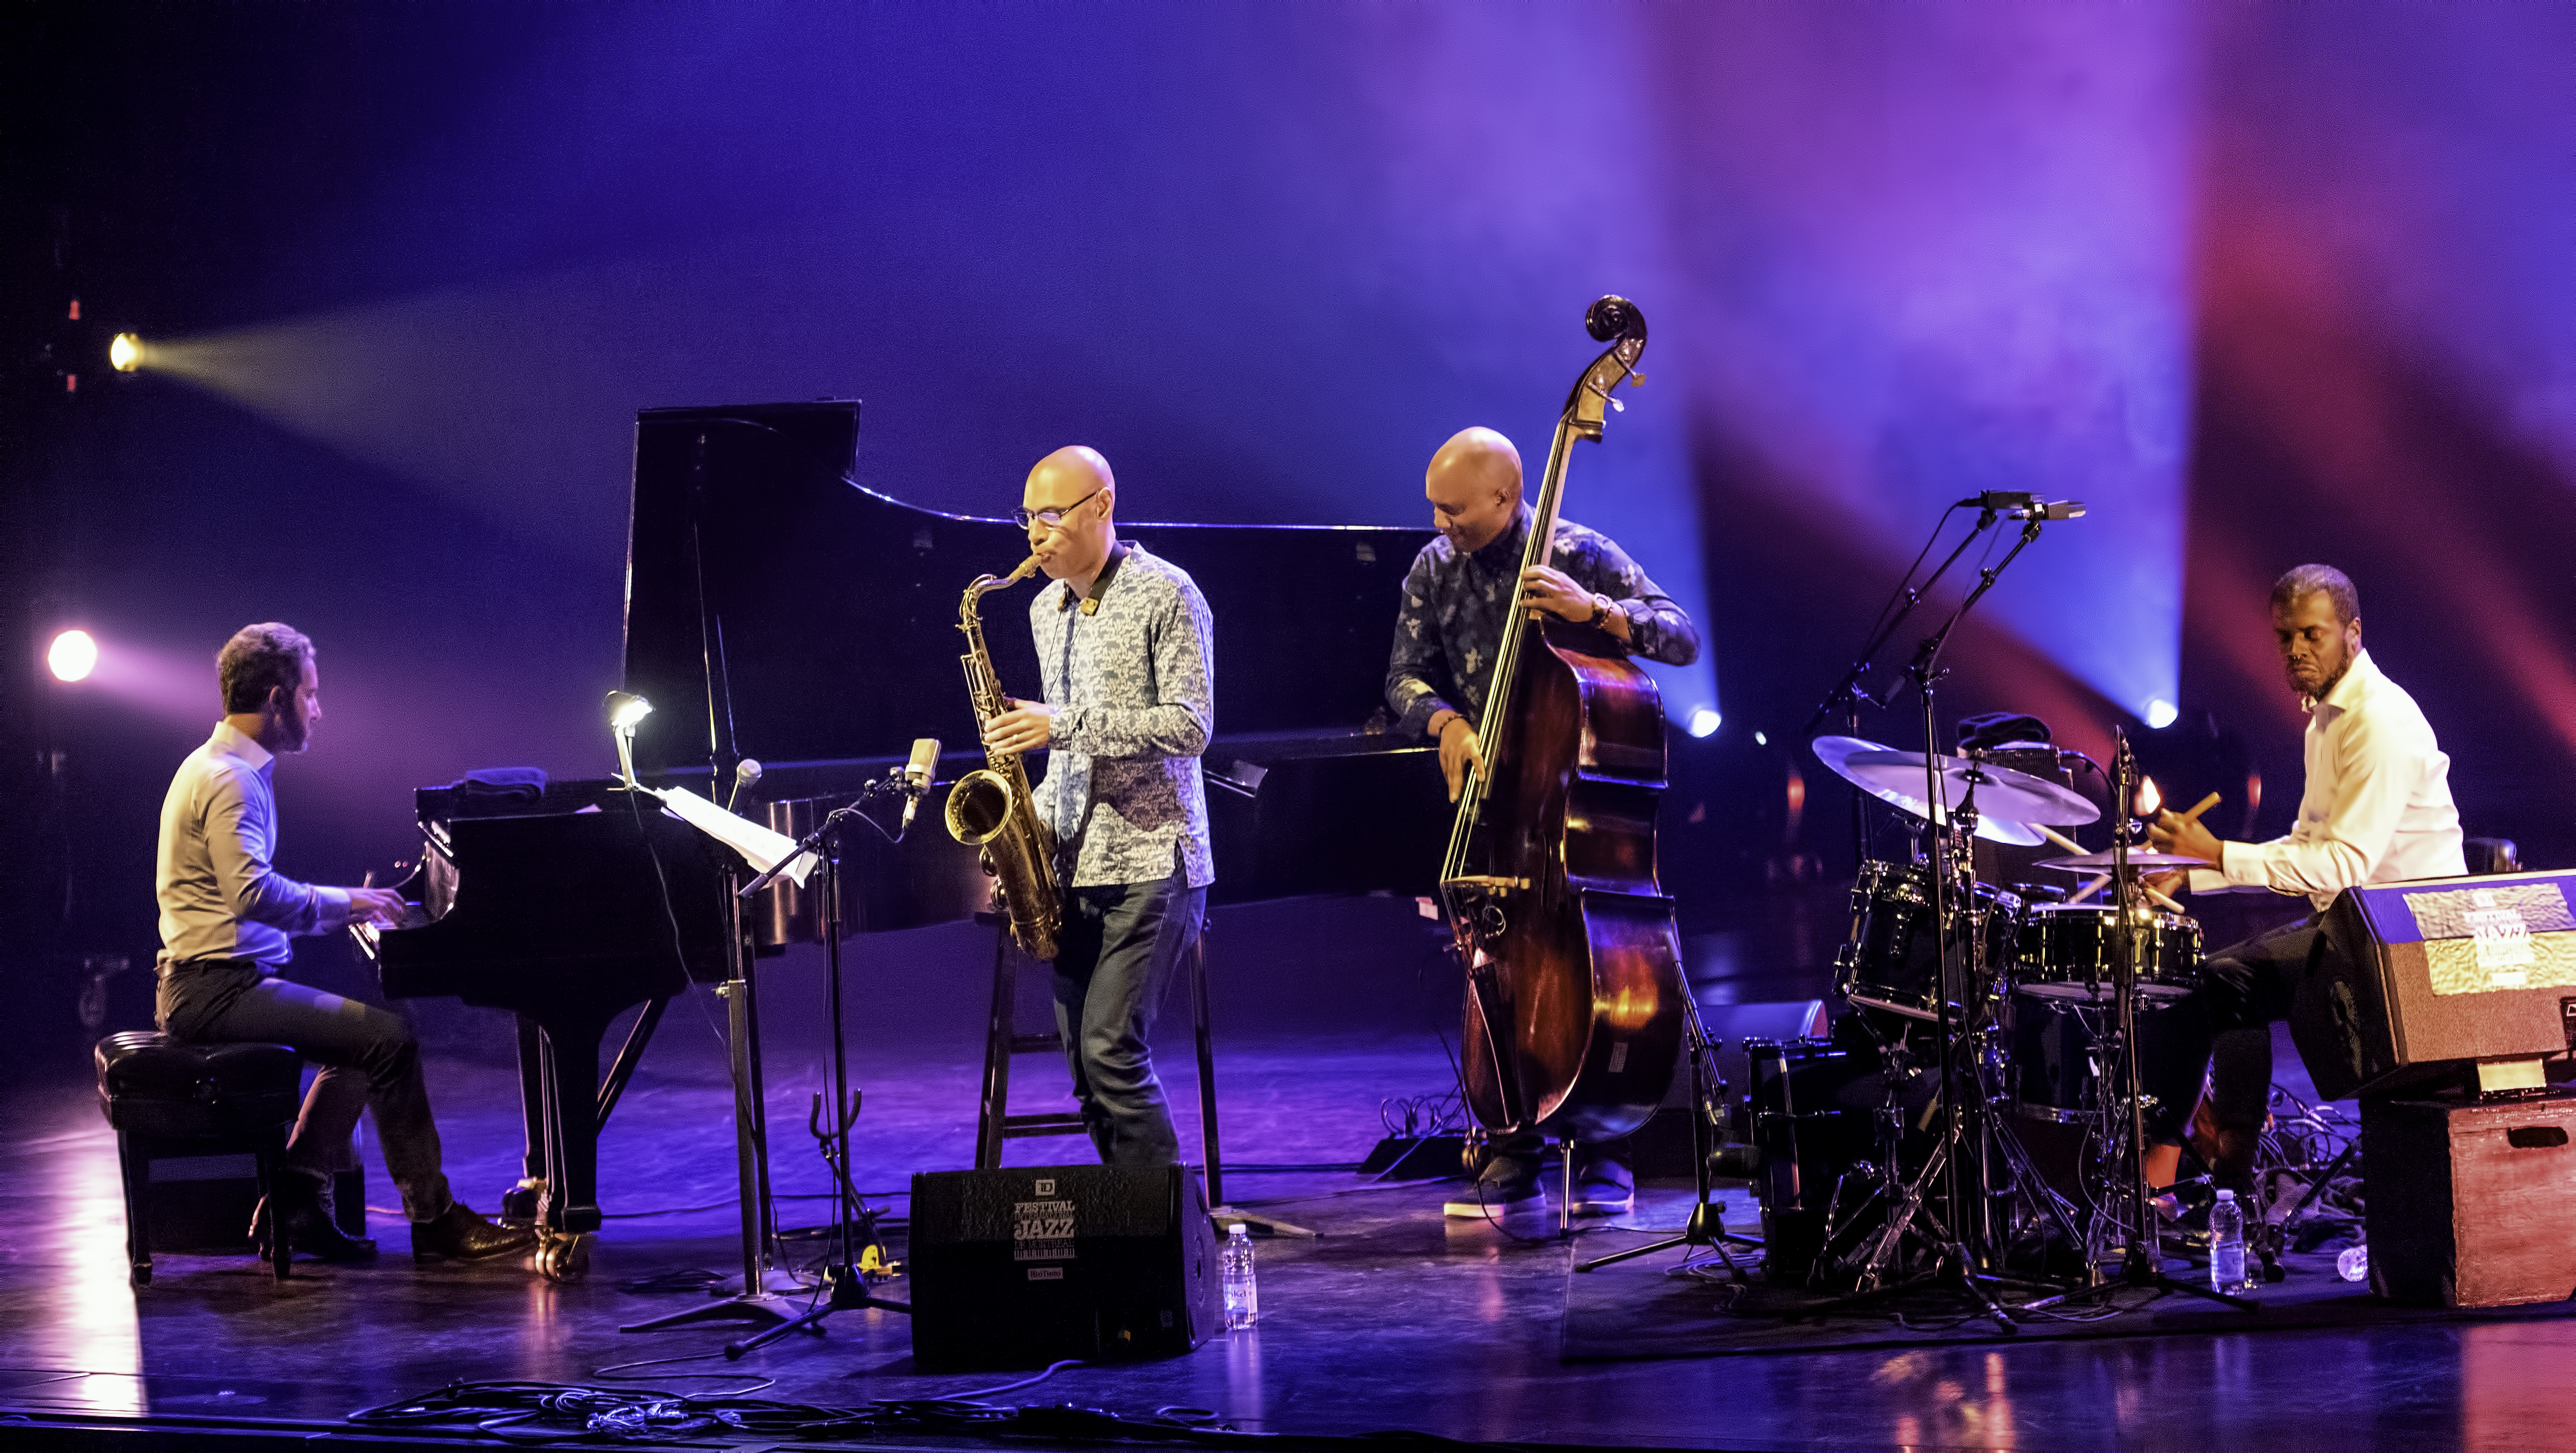 Aaron Goldberg, Joshua Redman, Ruben Rogers and Gregory Hutchinson with the Joshua Redman Quartet At The Montreal International Jazz Festival 2019